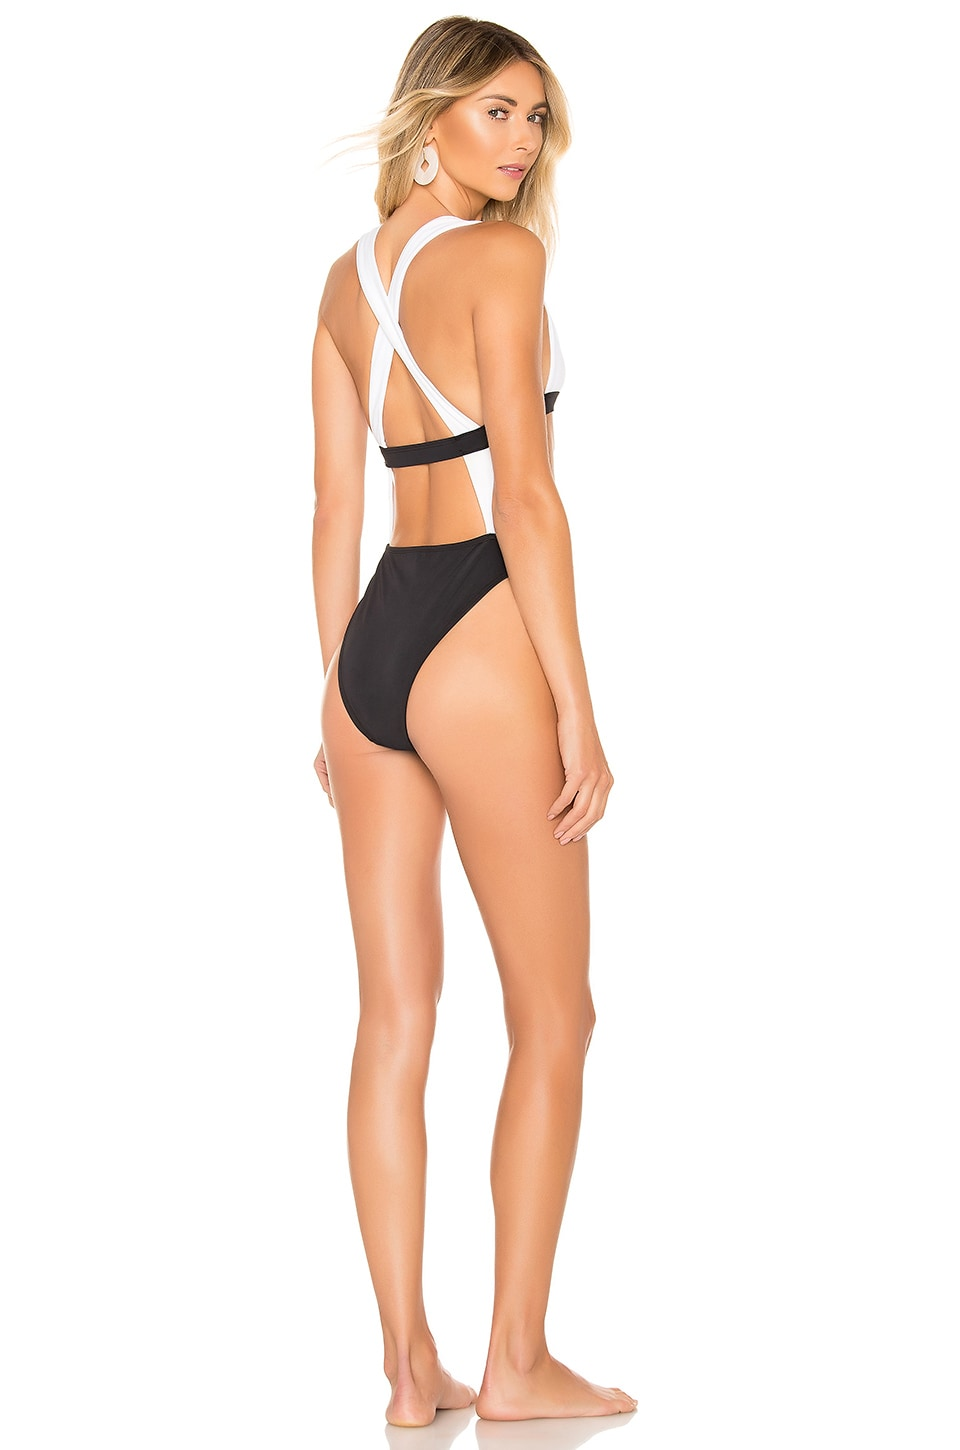 KAOHS Sofia One Piece in Black and White